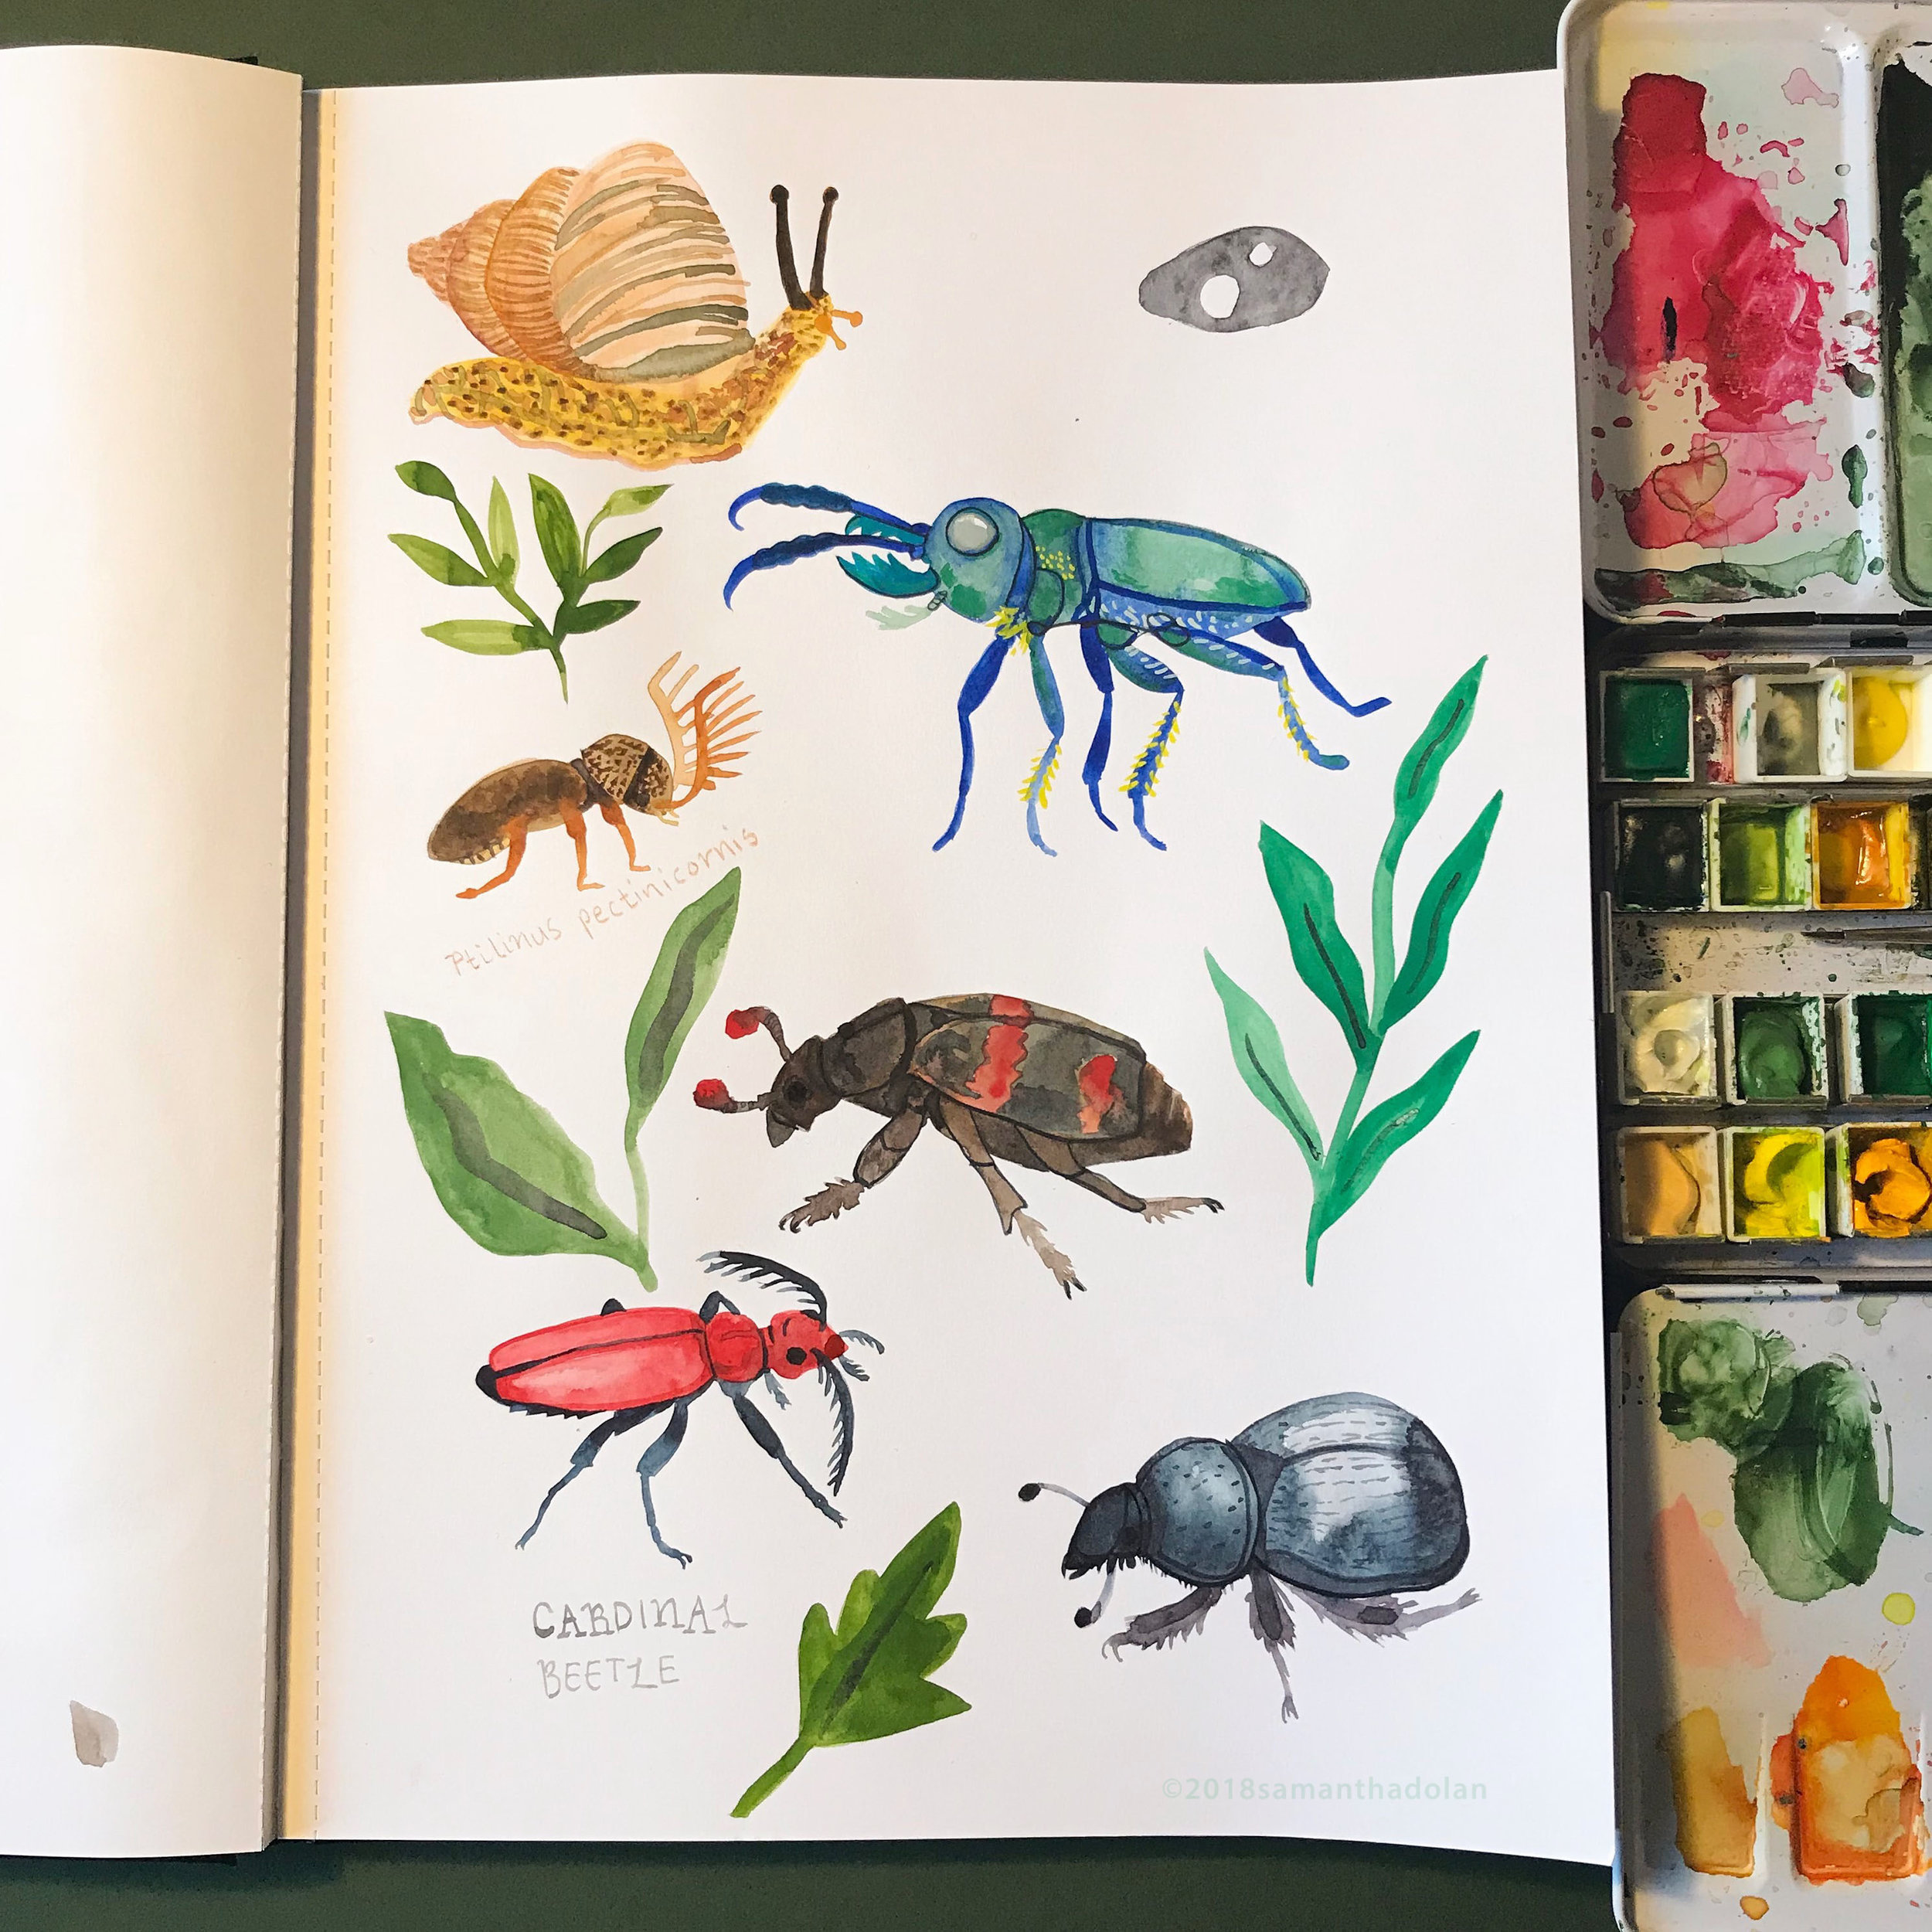 Painting more insects, June 2018.